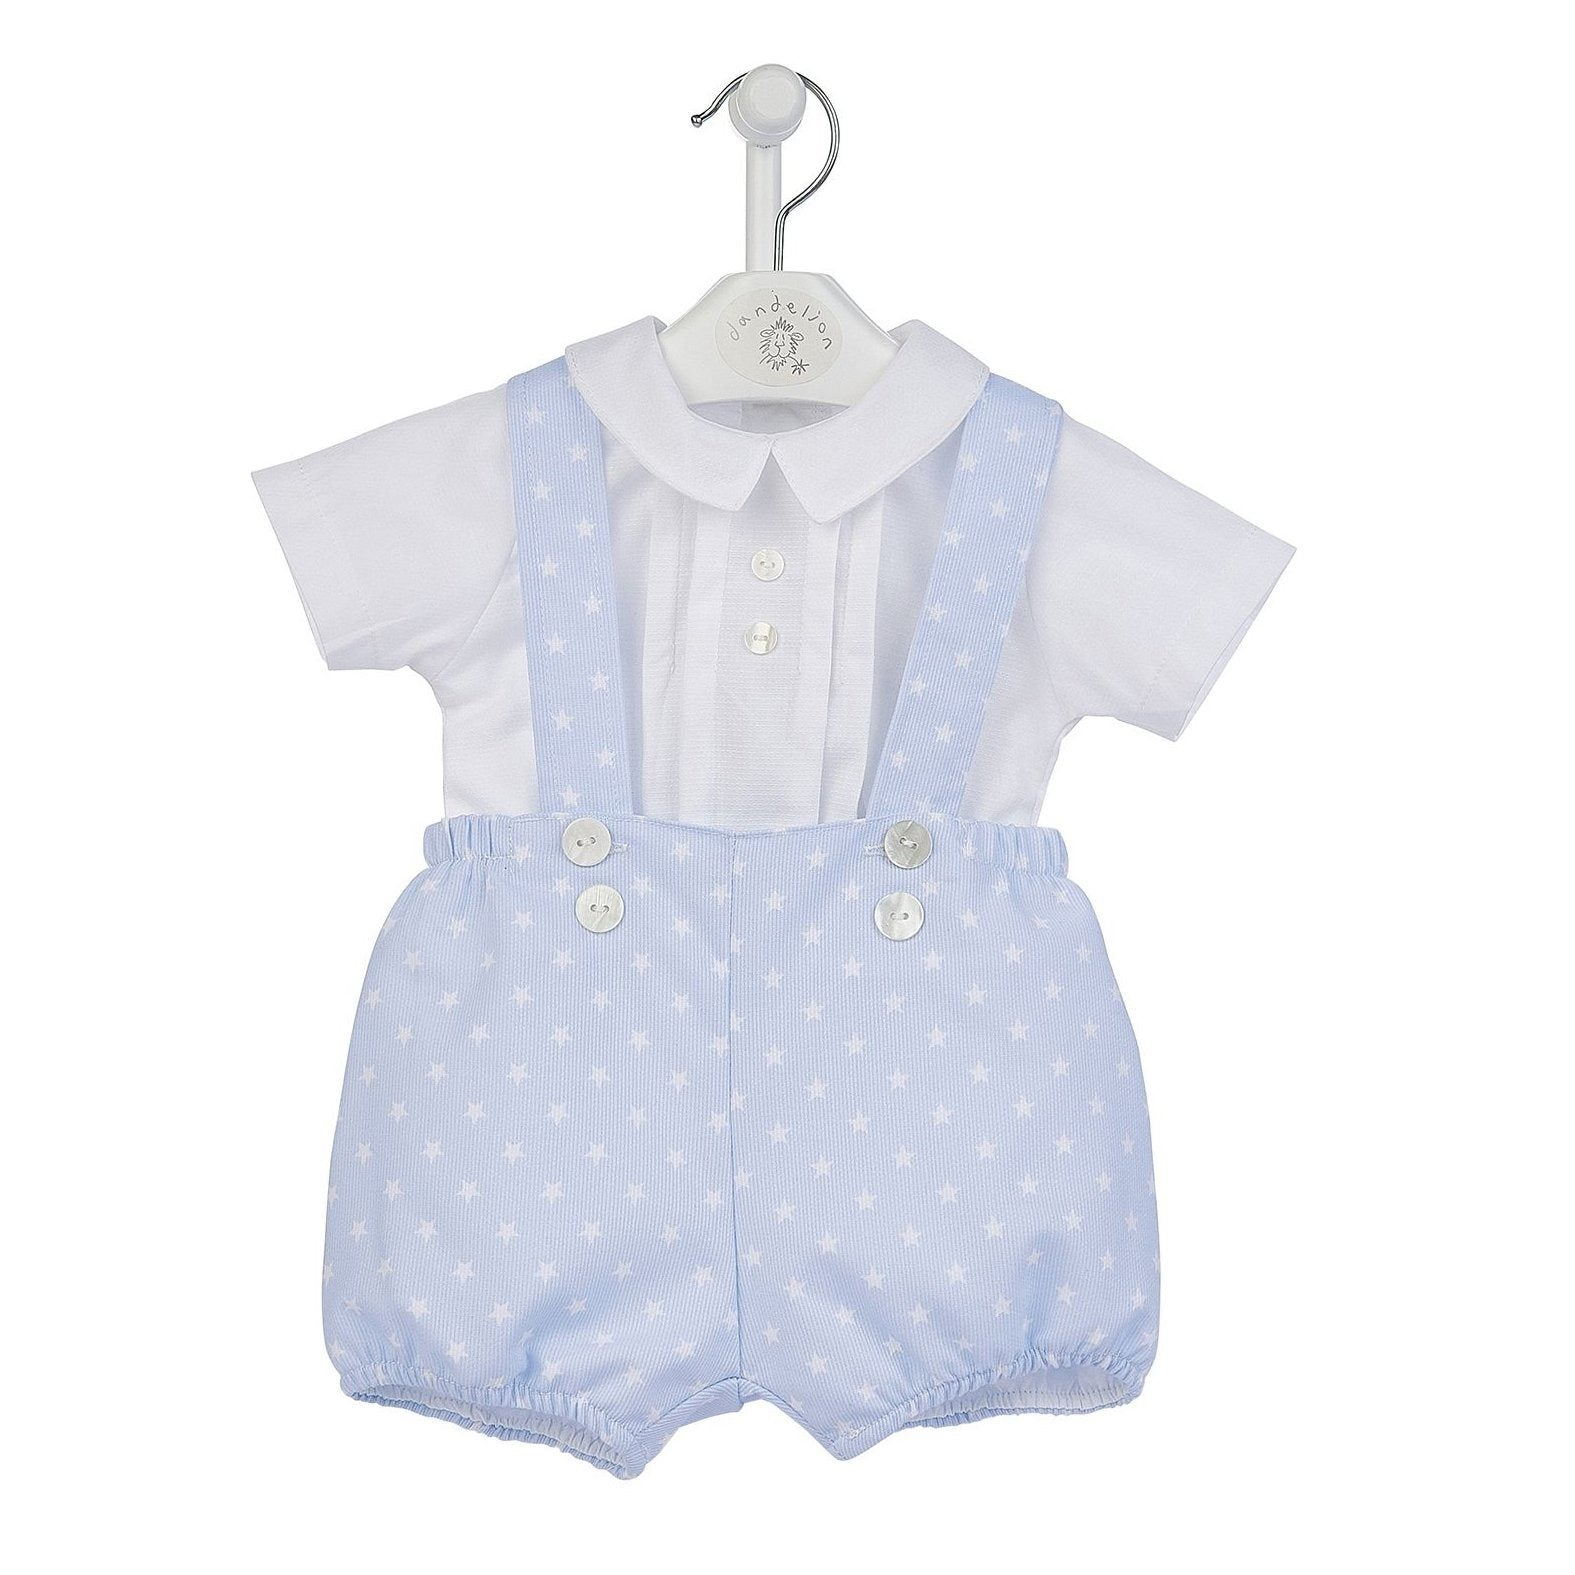 Dandelion White Shirt & Blue Star Print Shorts with Braces | Millie and John